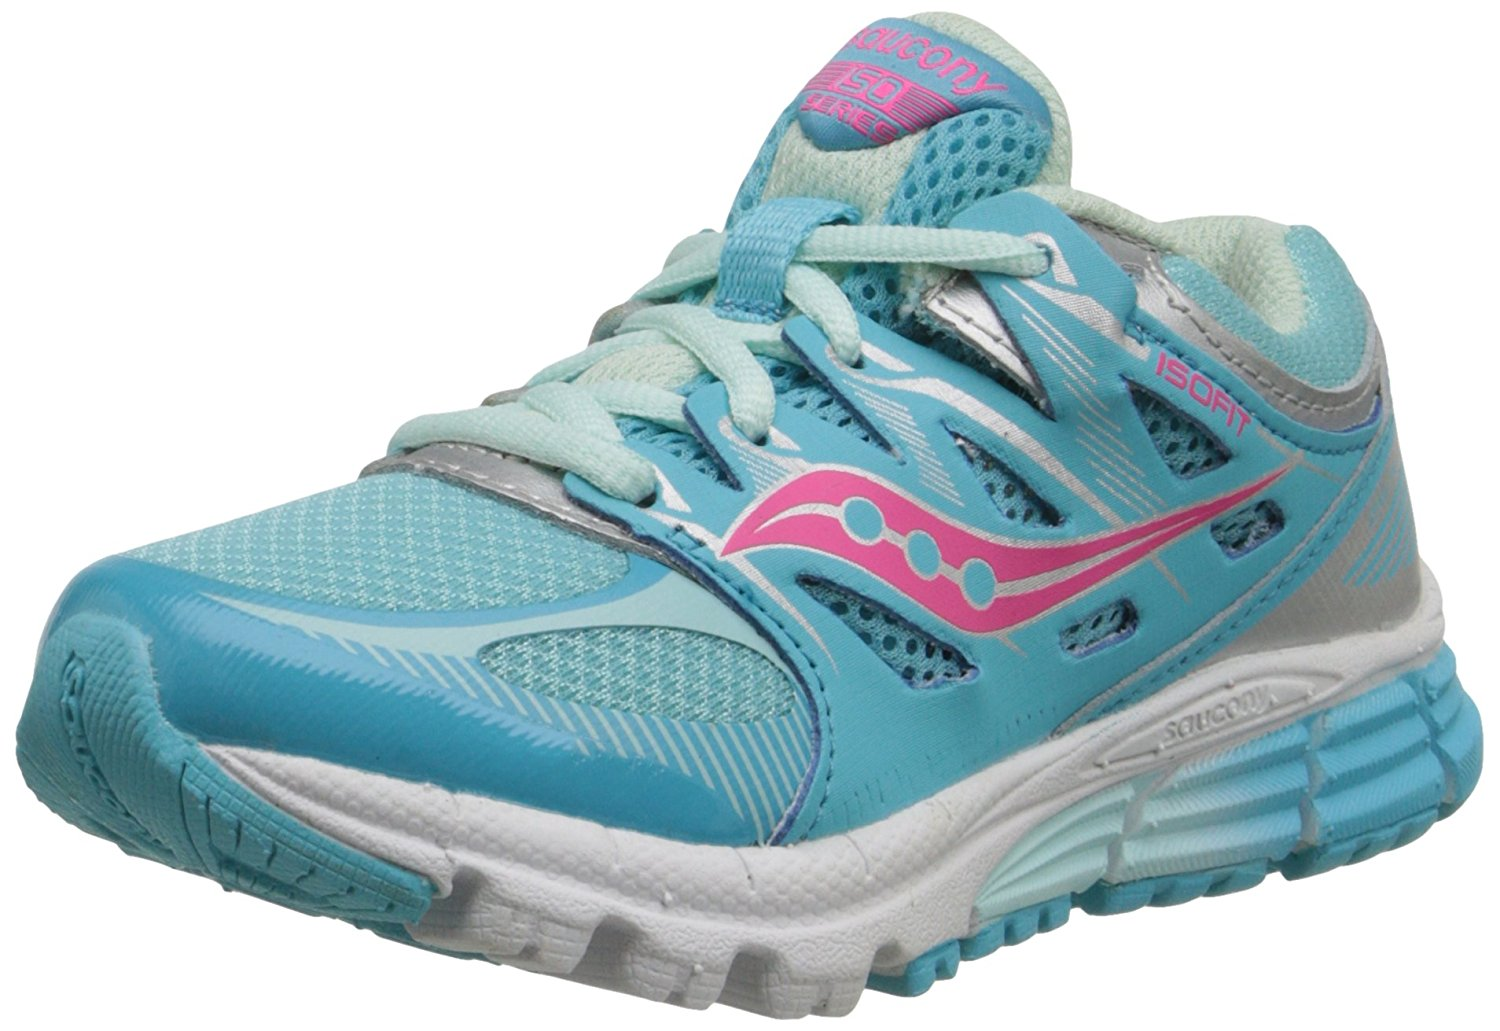 Saucony Kids Zealot Running Sneaker, 6.5 M US, Turquoise Silver by